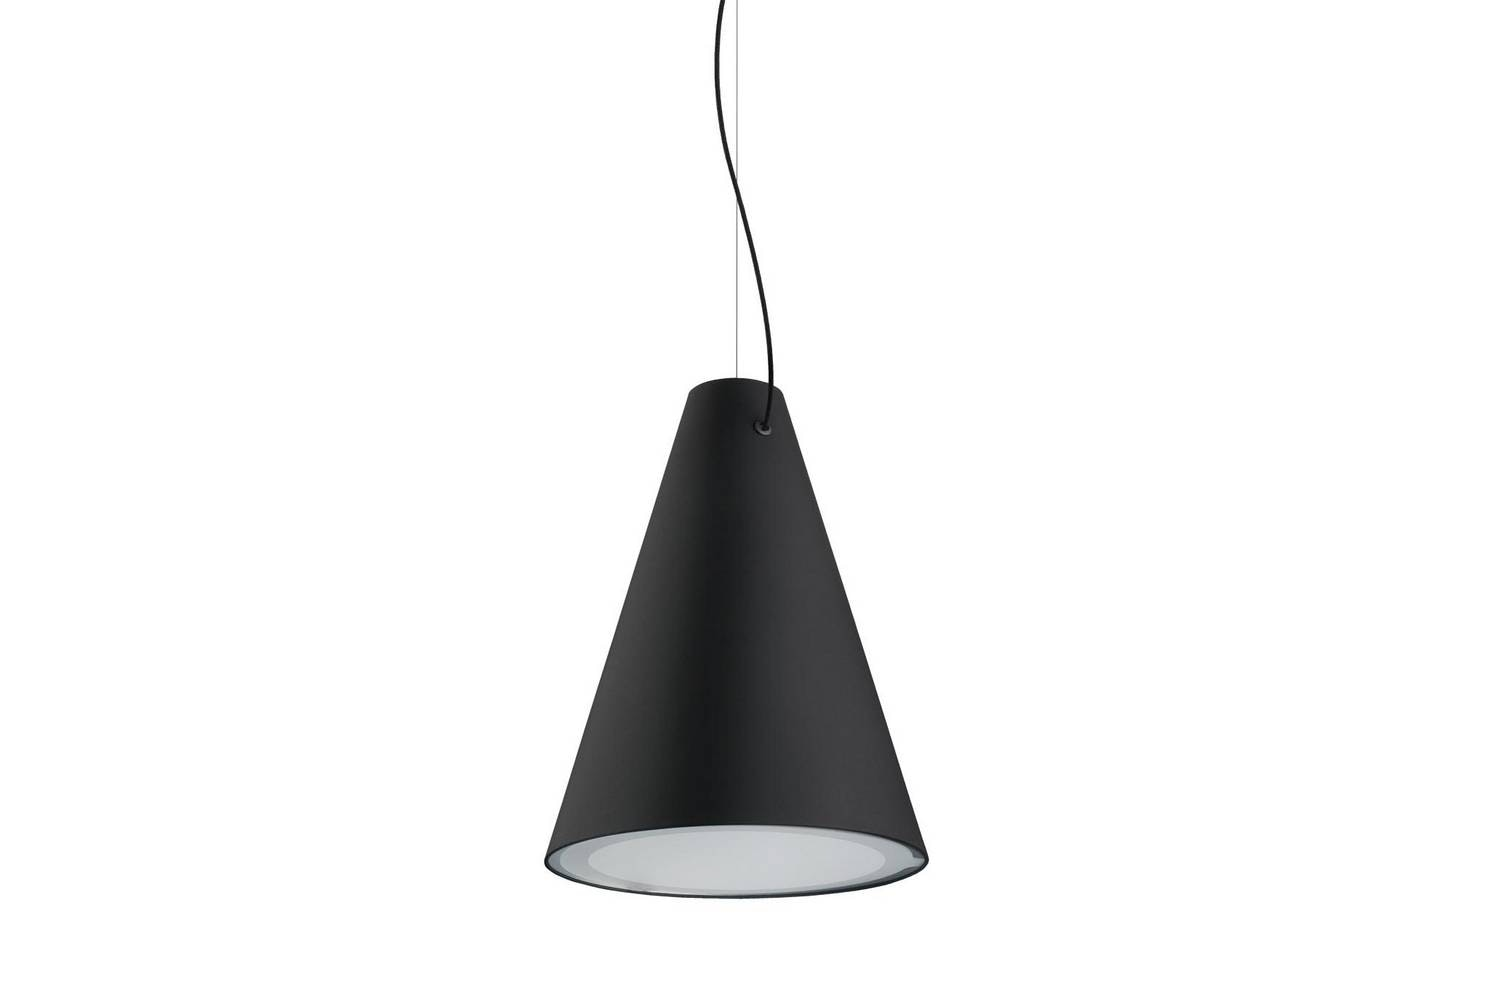 Megaphone Pendant by Henrik Pedersen for Frandsen Lighting